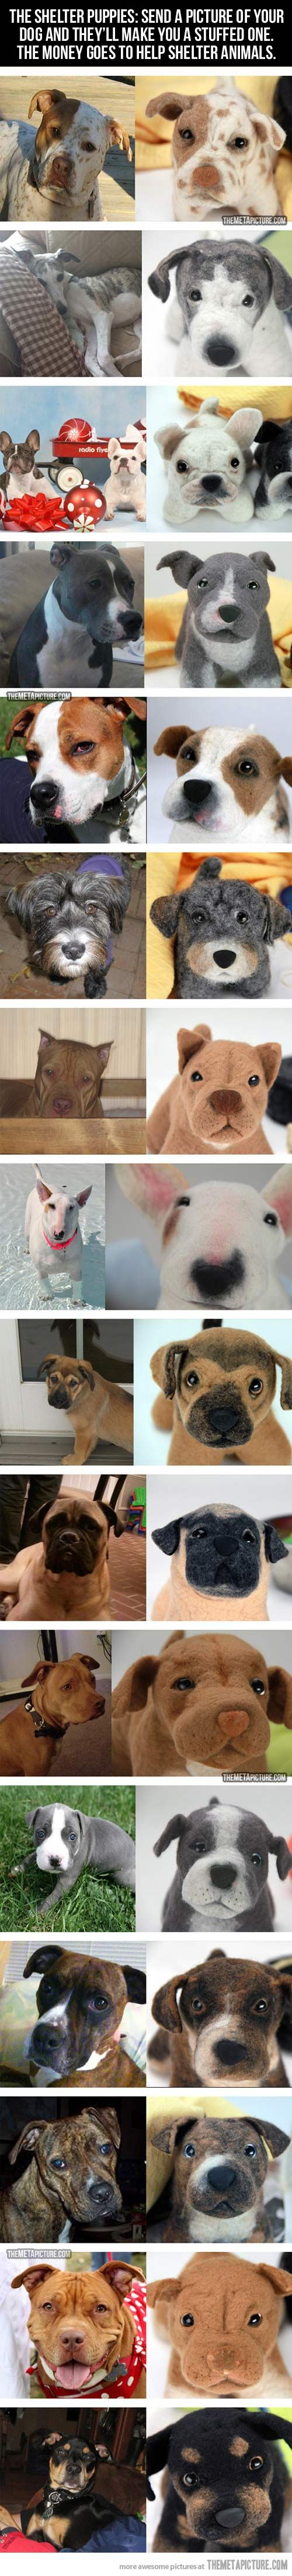 Your dog in stuffed animal form…send these guys a picture of your dog and they will make it into a stuffed animal. Proceeds go to animal shelter :)----I want one of these that looks like my Winnie.